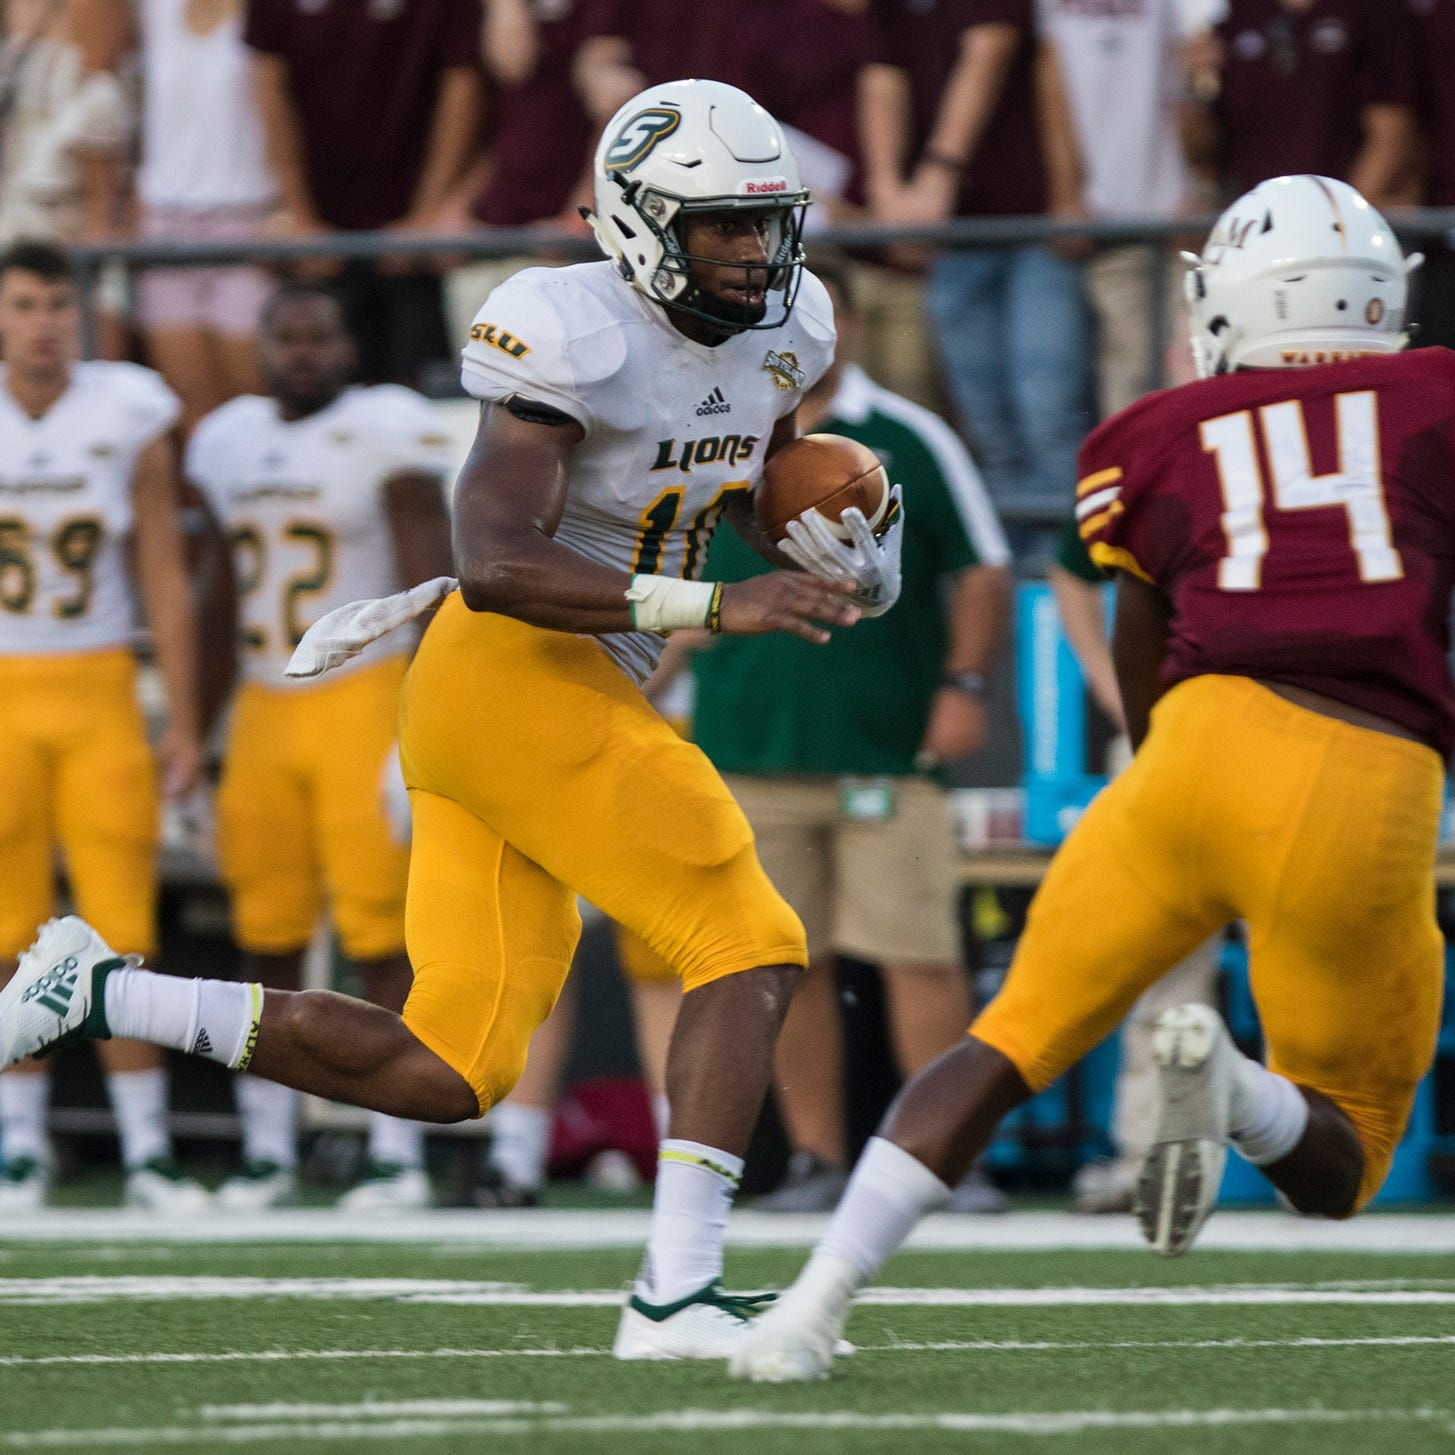 ULM's defense faces latest test at Southern Miss